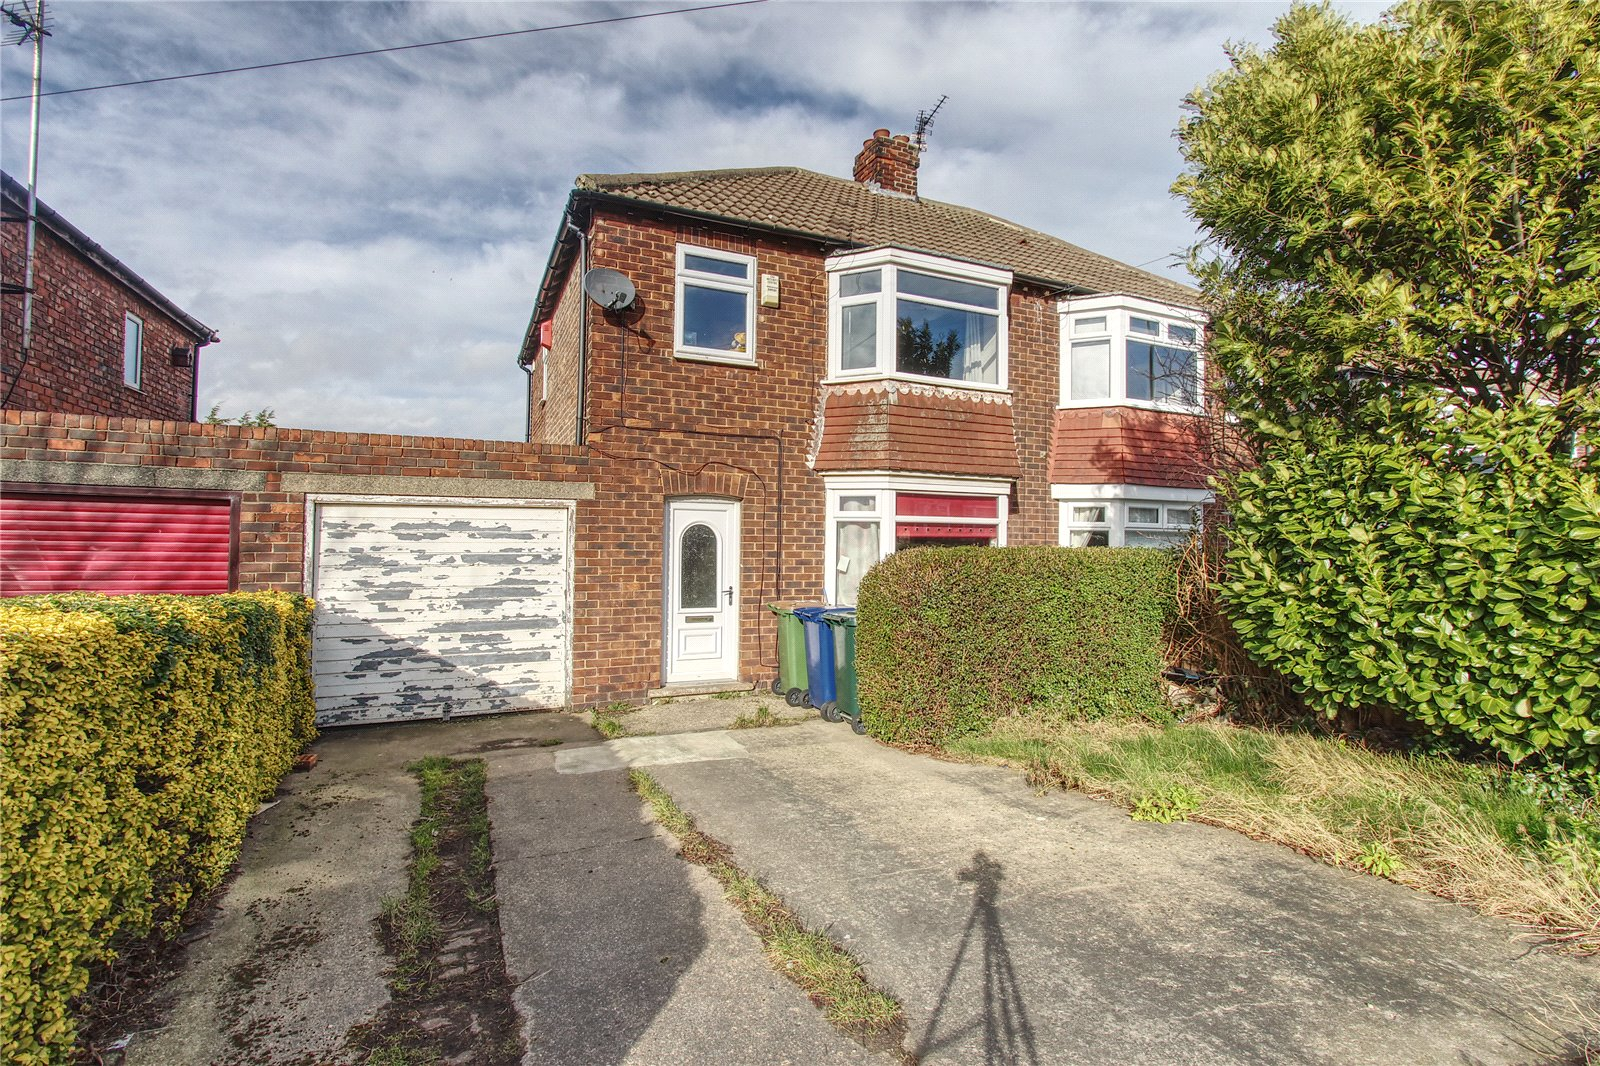 3 bed house for sale in Broadway East, Redcar  - Property Image 1